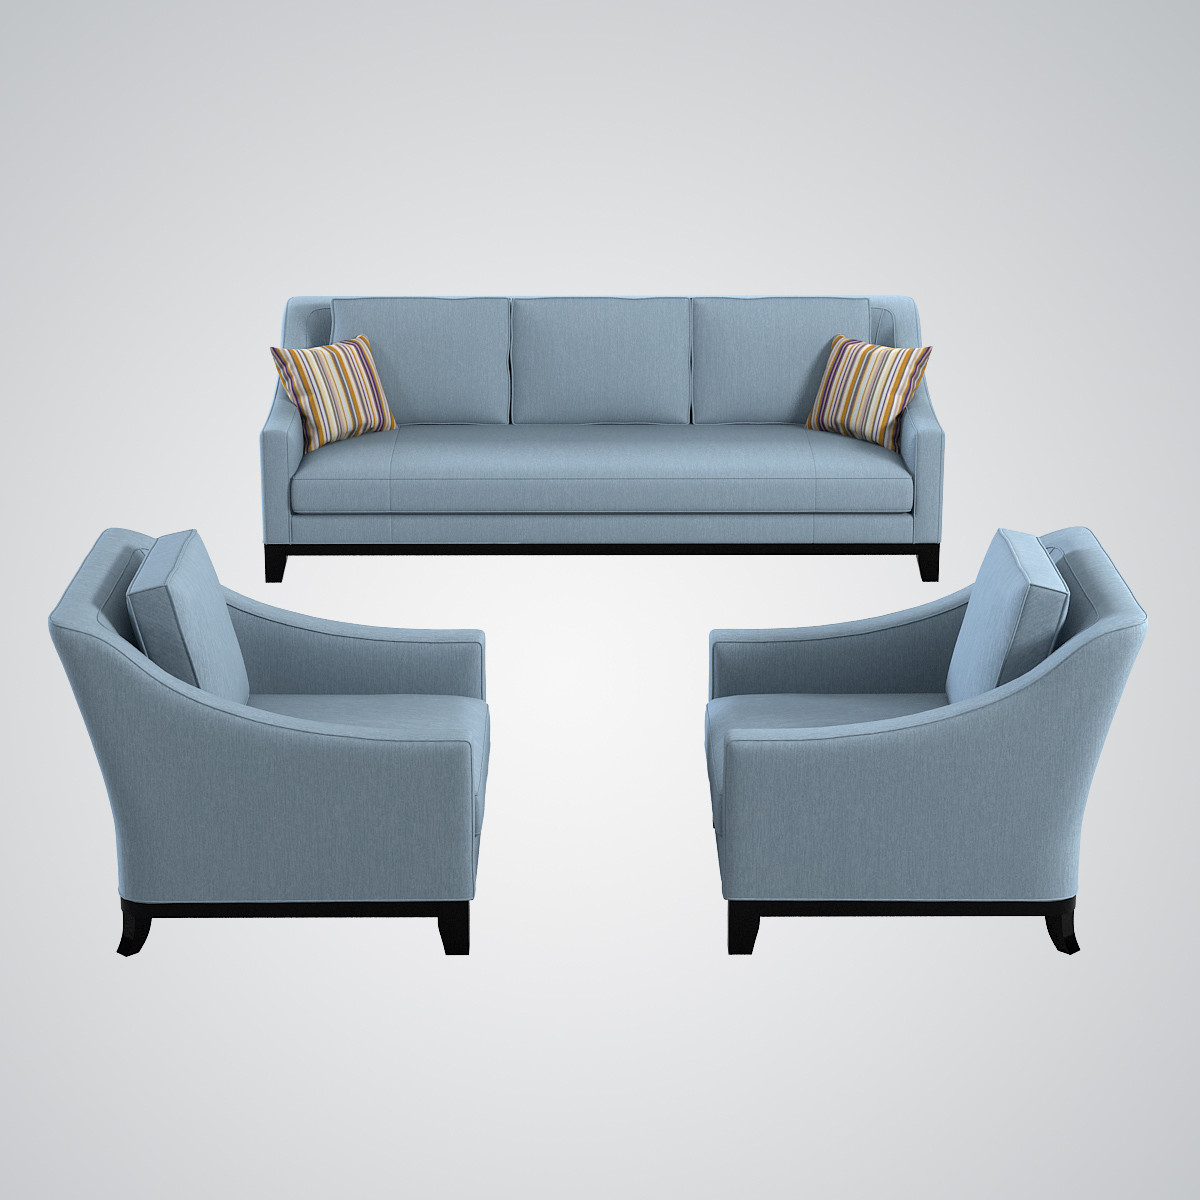 Popular Luxury Sofa And Chair Set 29 For Your Living Room Sofa Ideas With For Sofa And Chair Set (View 10 of 20)